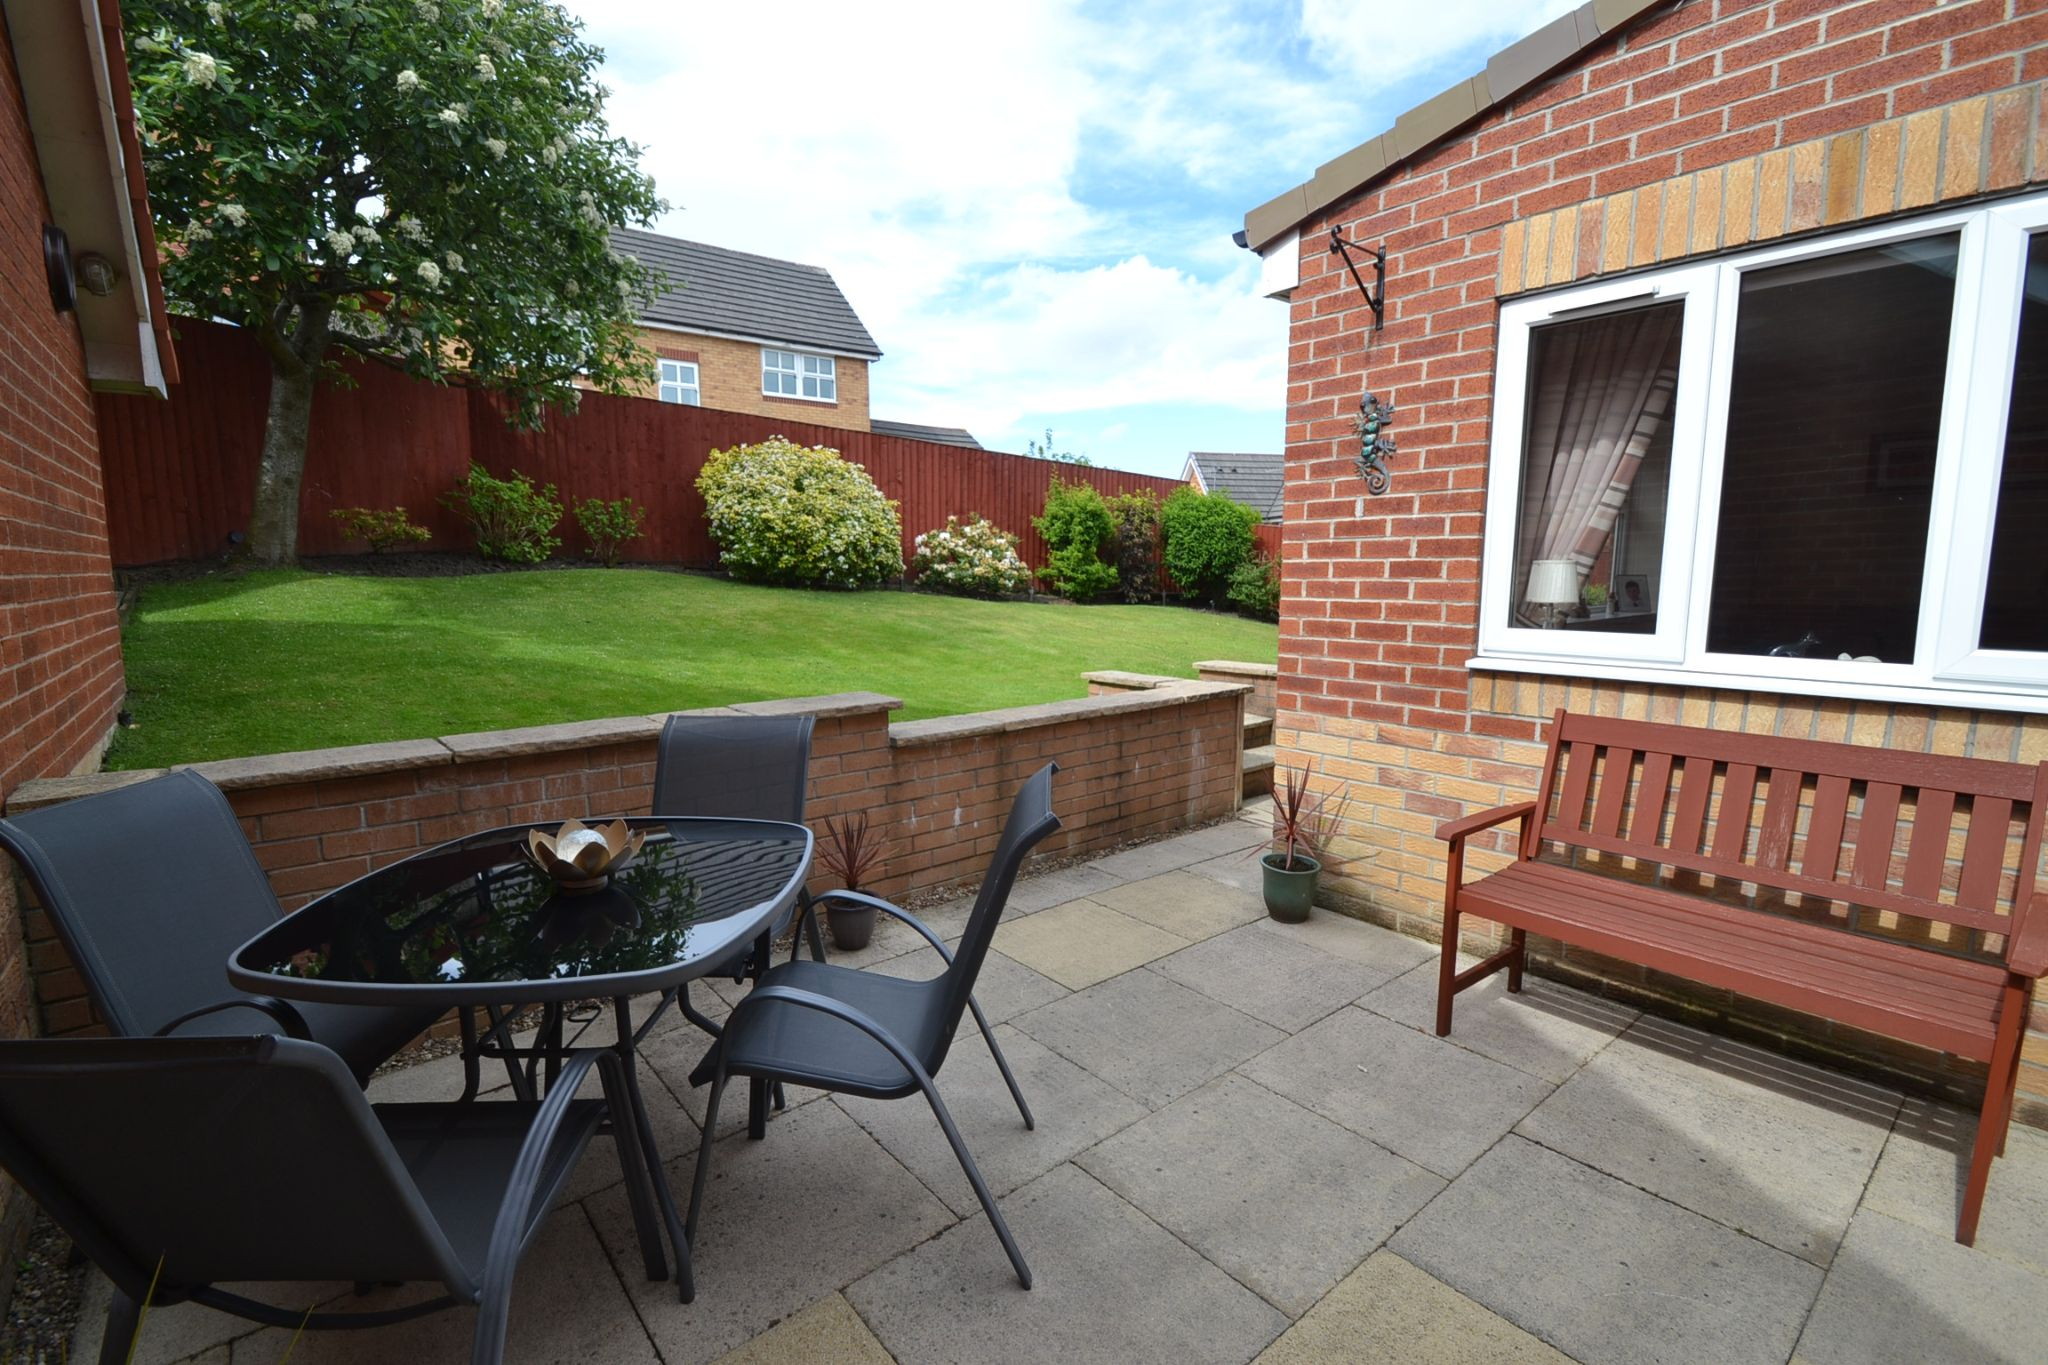 3 Bedroom Detached House For Sale - Photograph 24